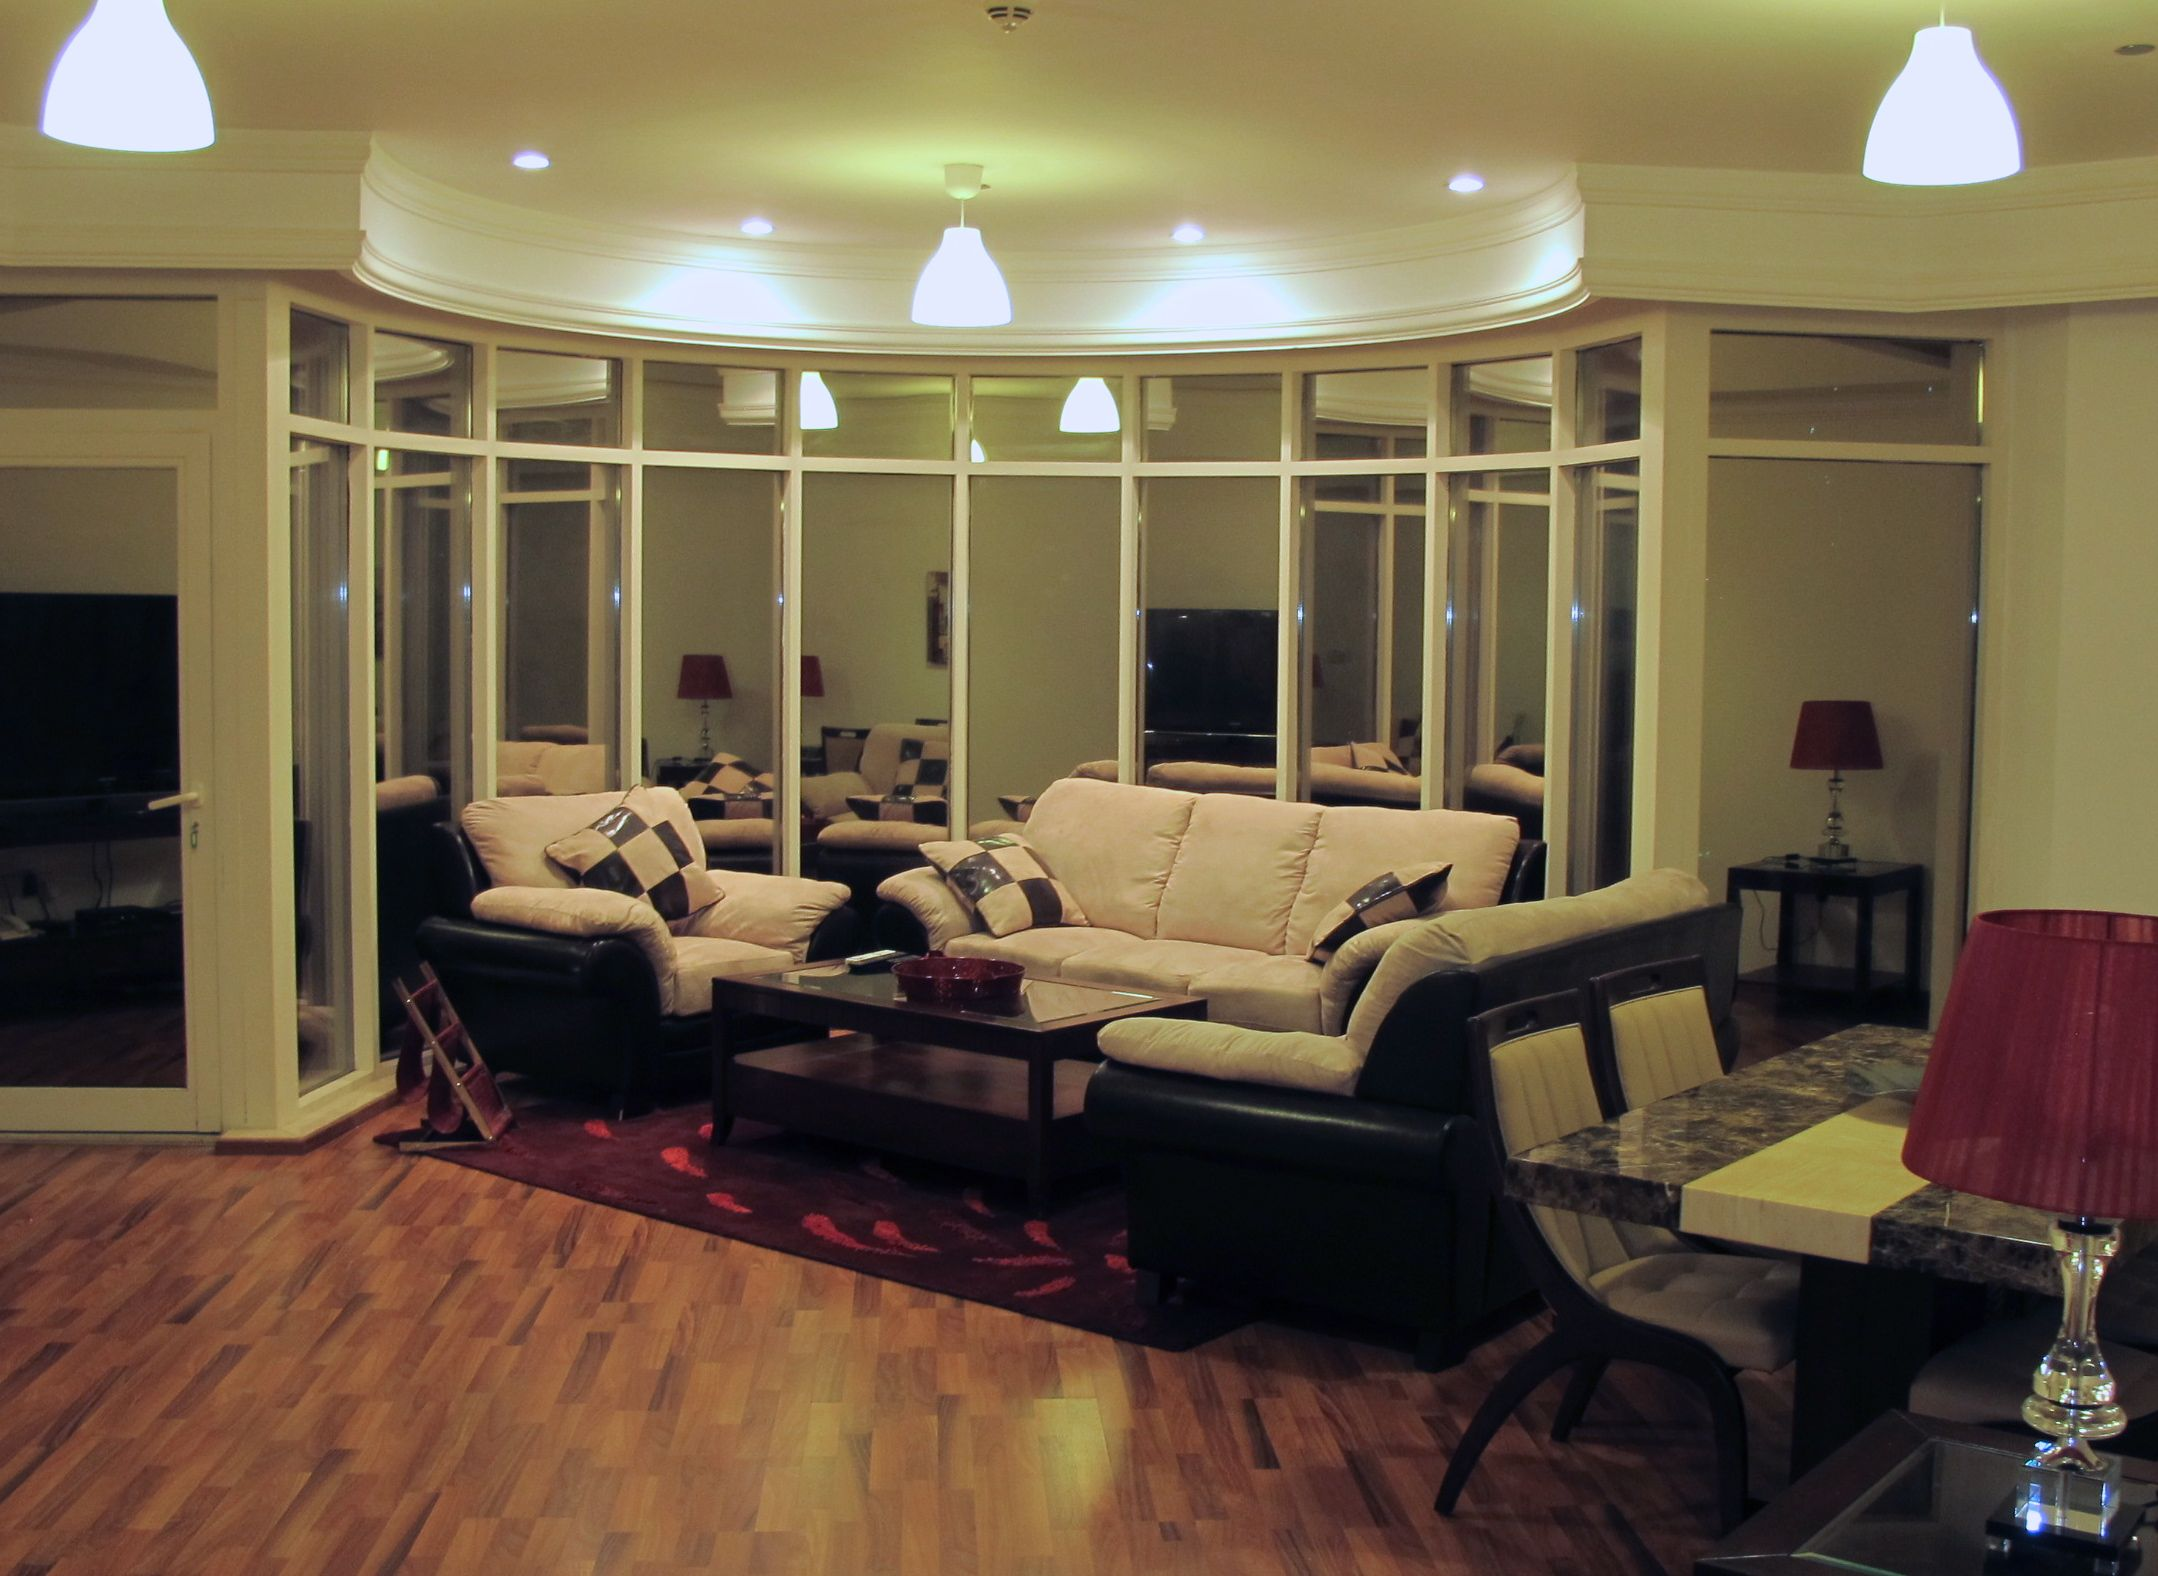 Snazzy living room!